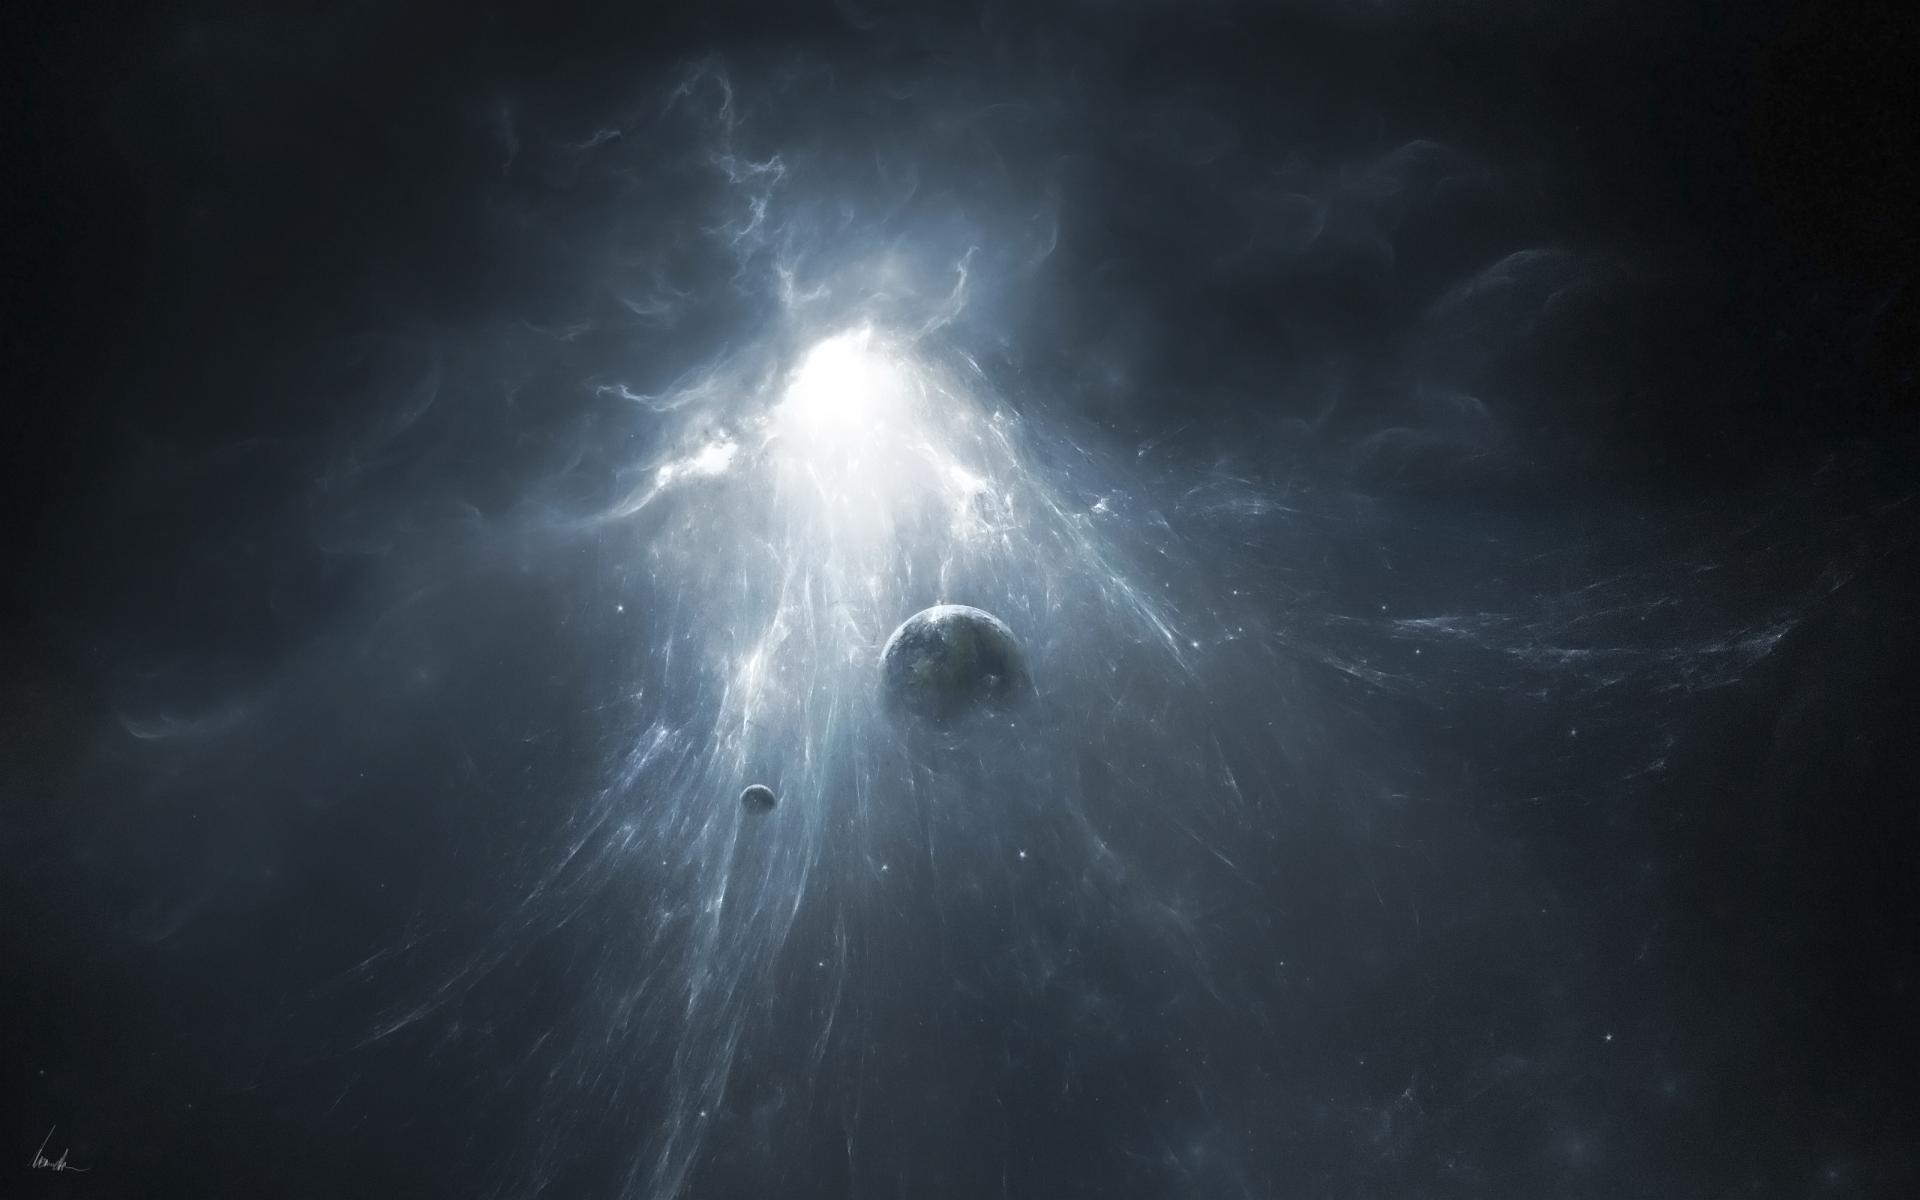 Outer space black holes